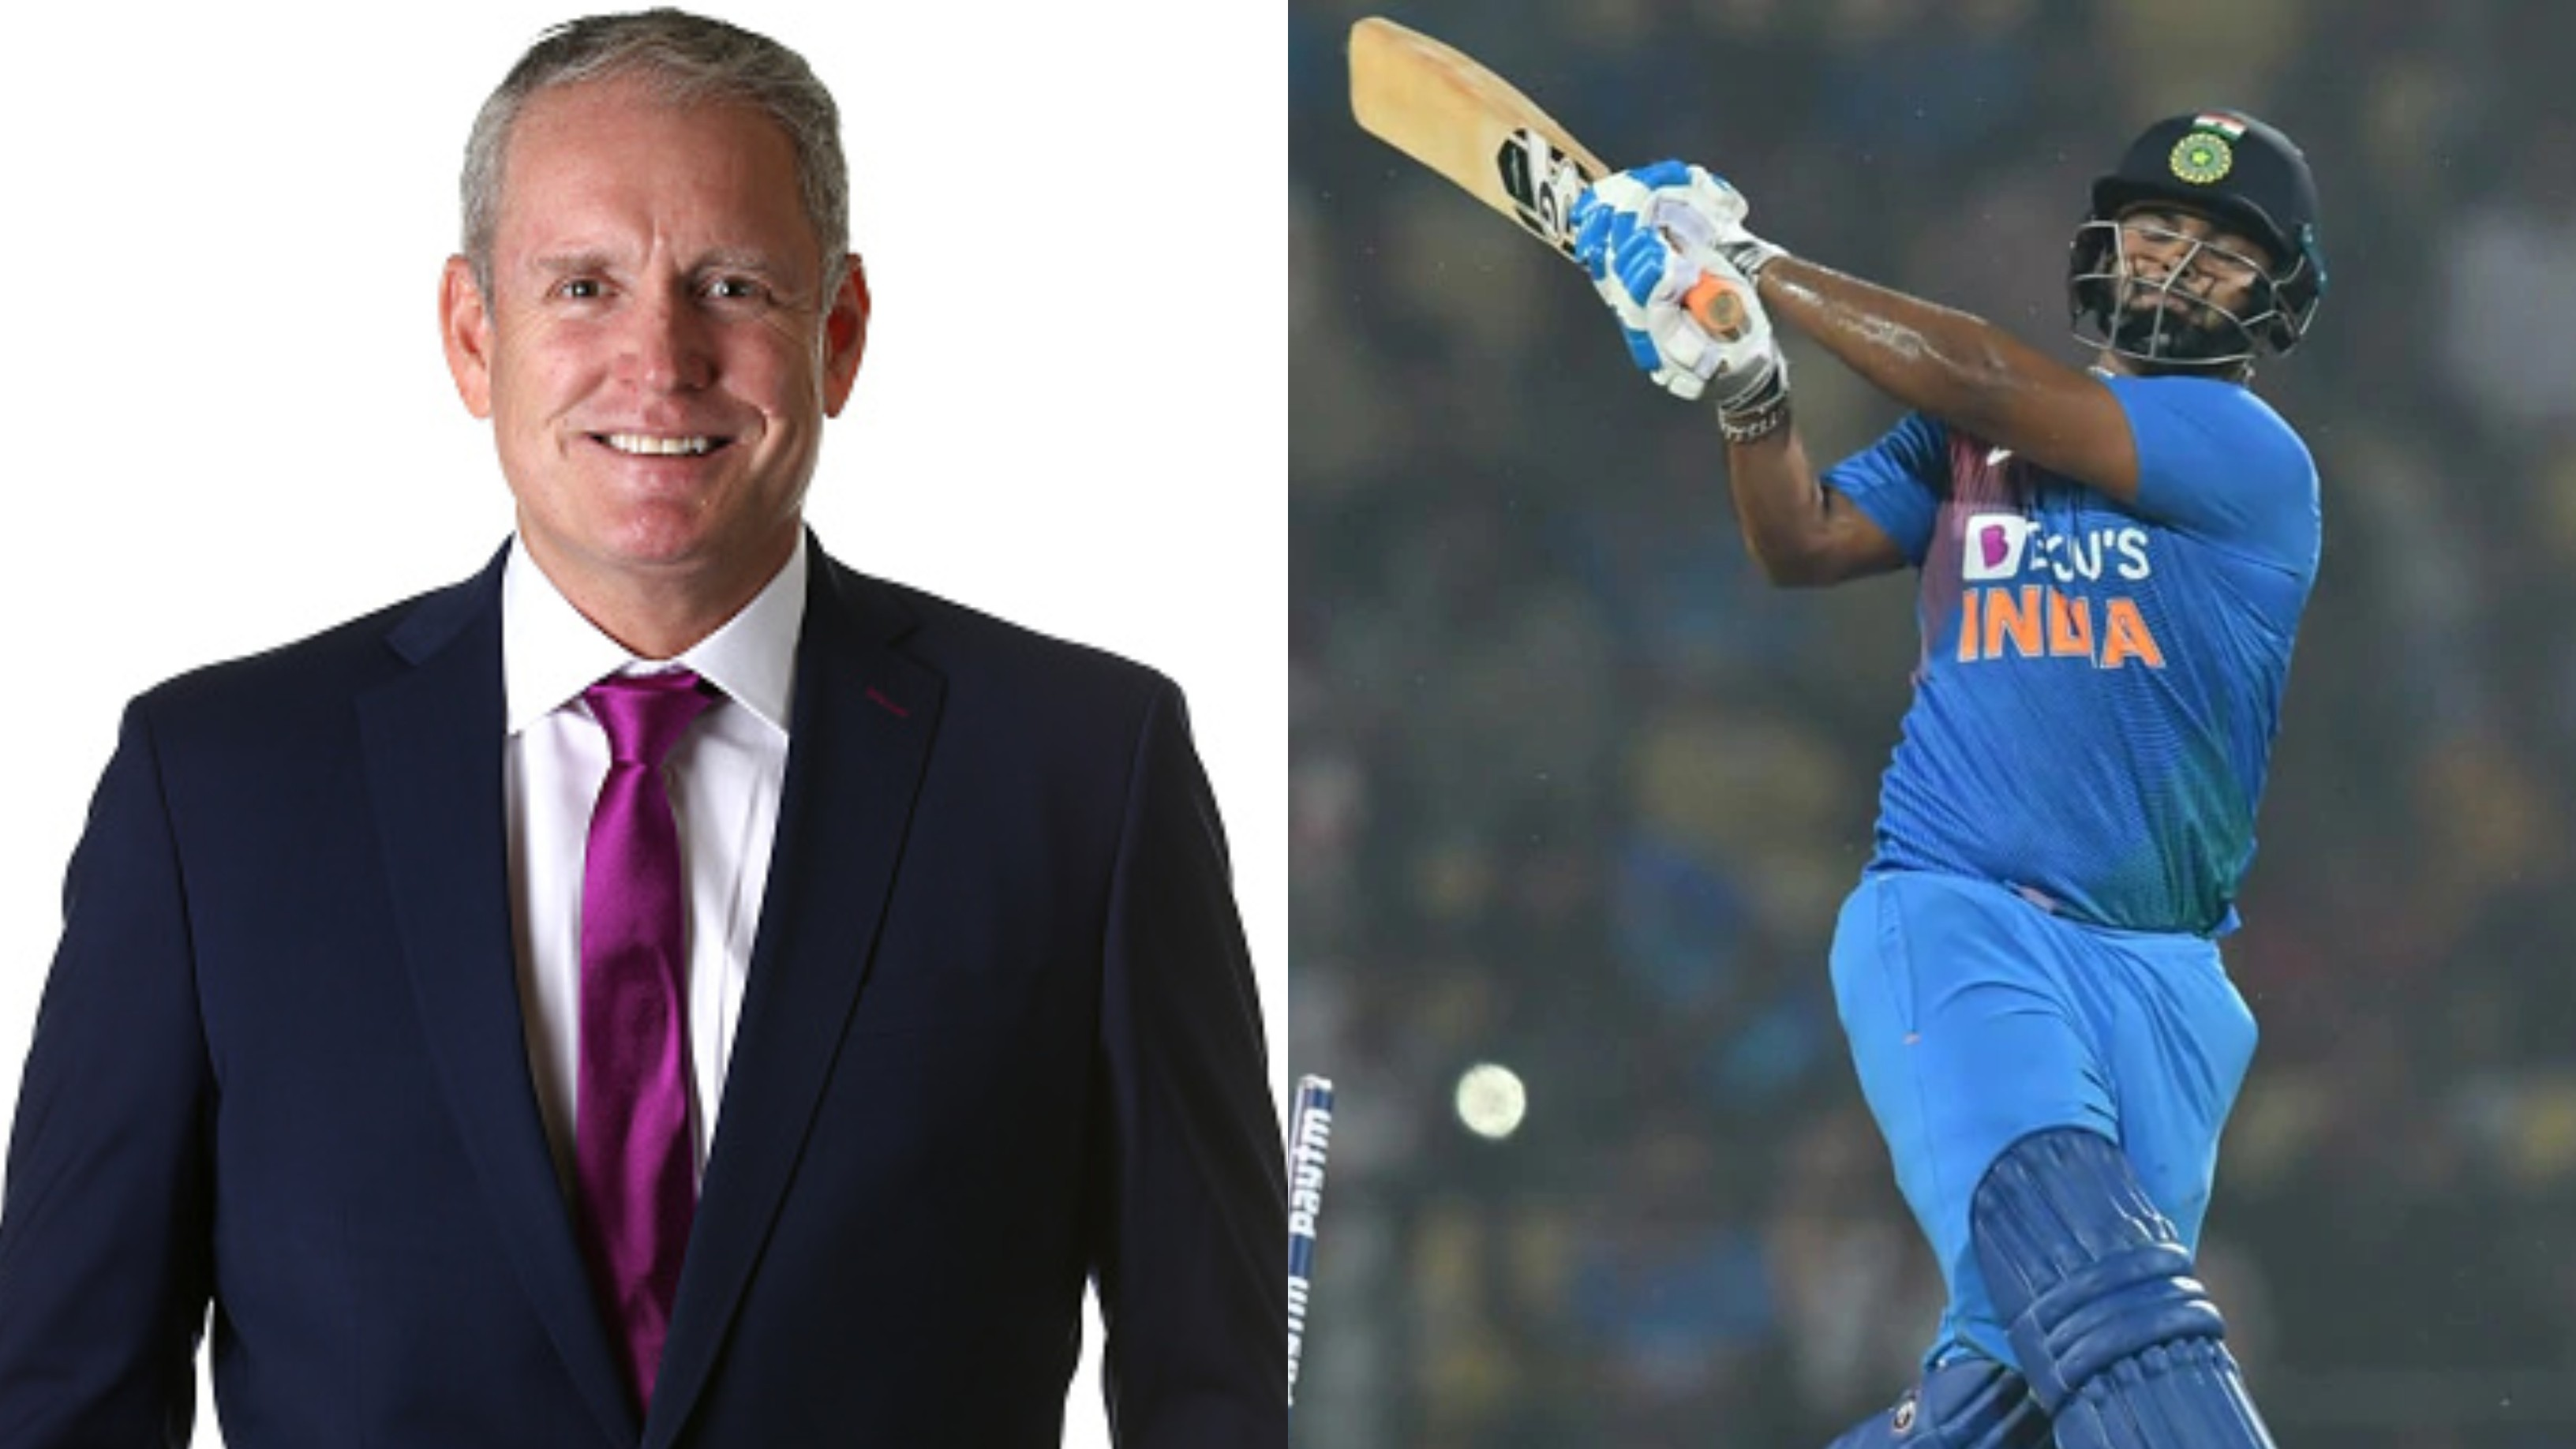 AUS v IND 2020-21: Tom Moody says Rishabh Pant is solution to India's middle-order woes in T20Is